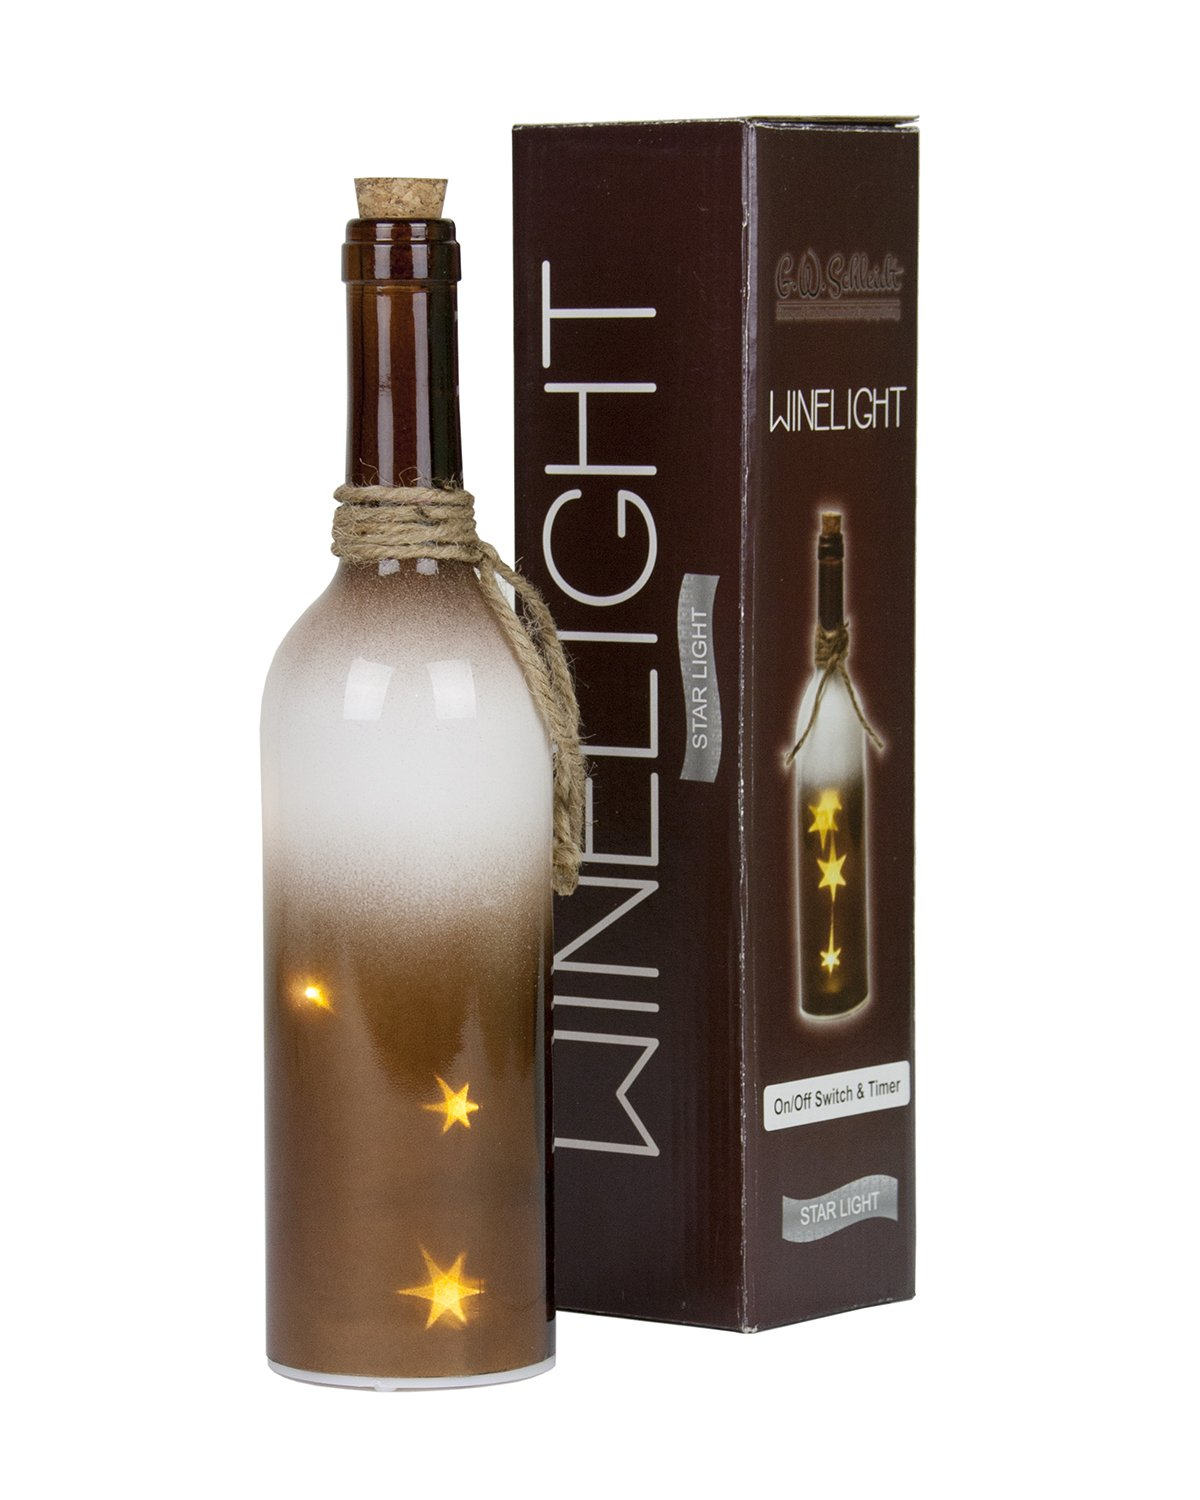 Fairylight Wine Bottle Stars Lights With On//Off Switch and Timer Christmas Decor Brown